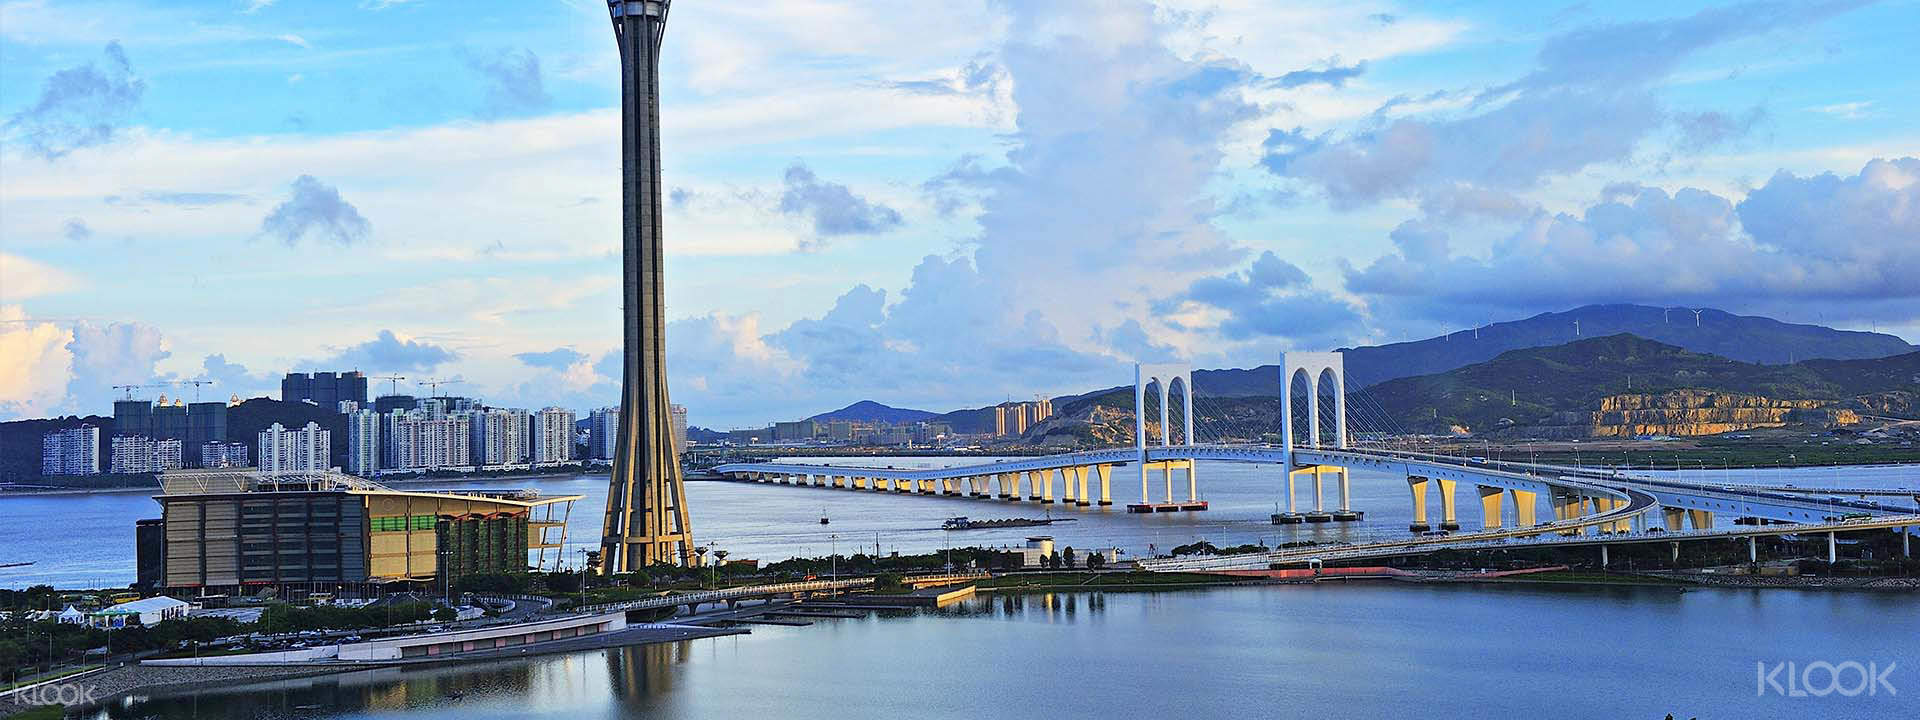 Macau Tower Afternoon Tea and VIP SkyHigh Ticket - Klook